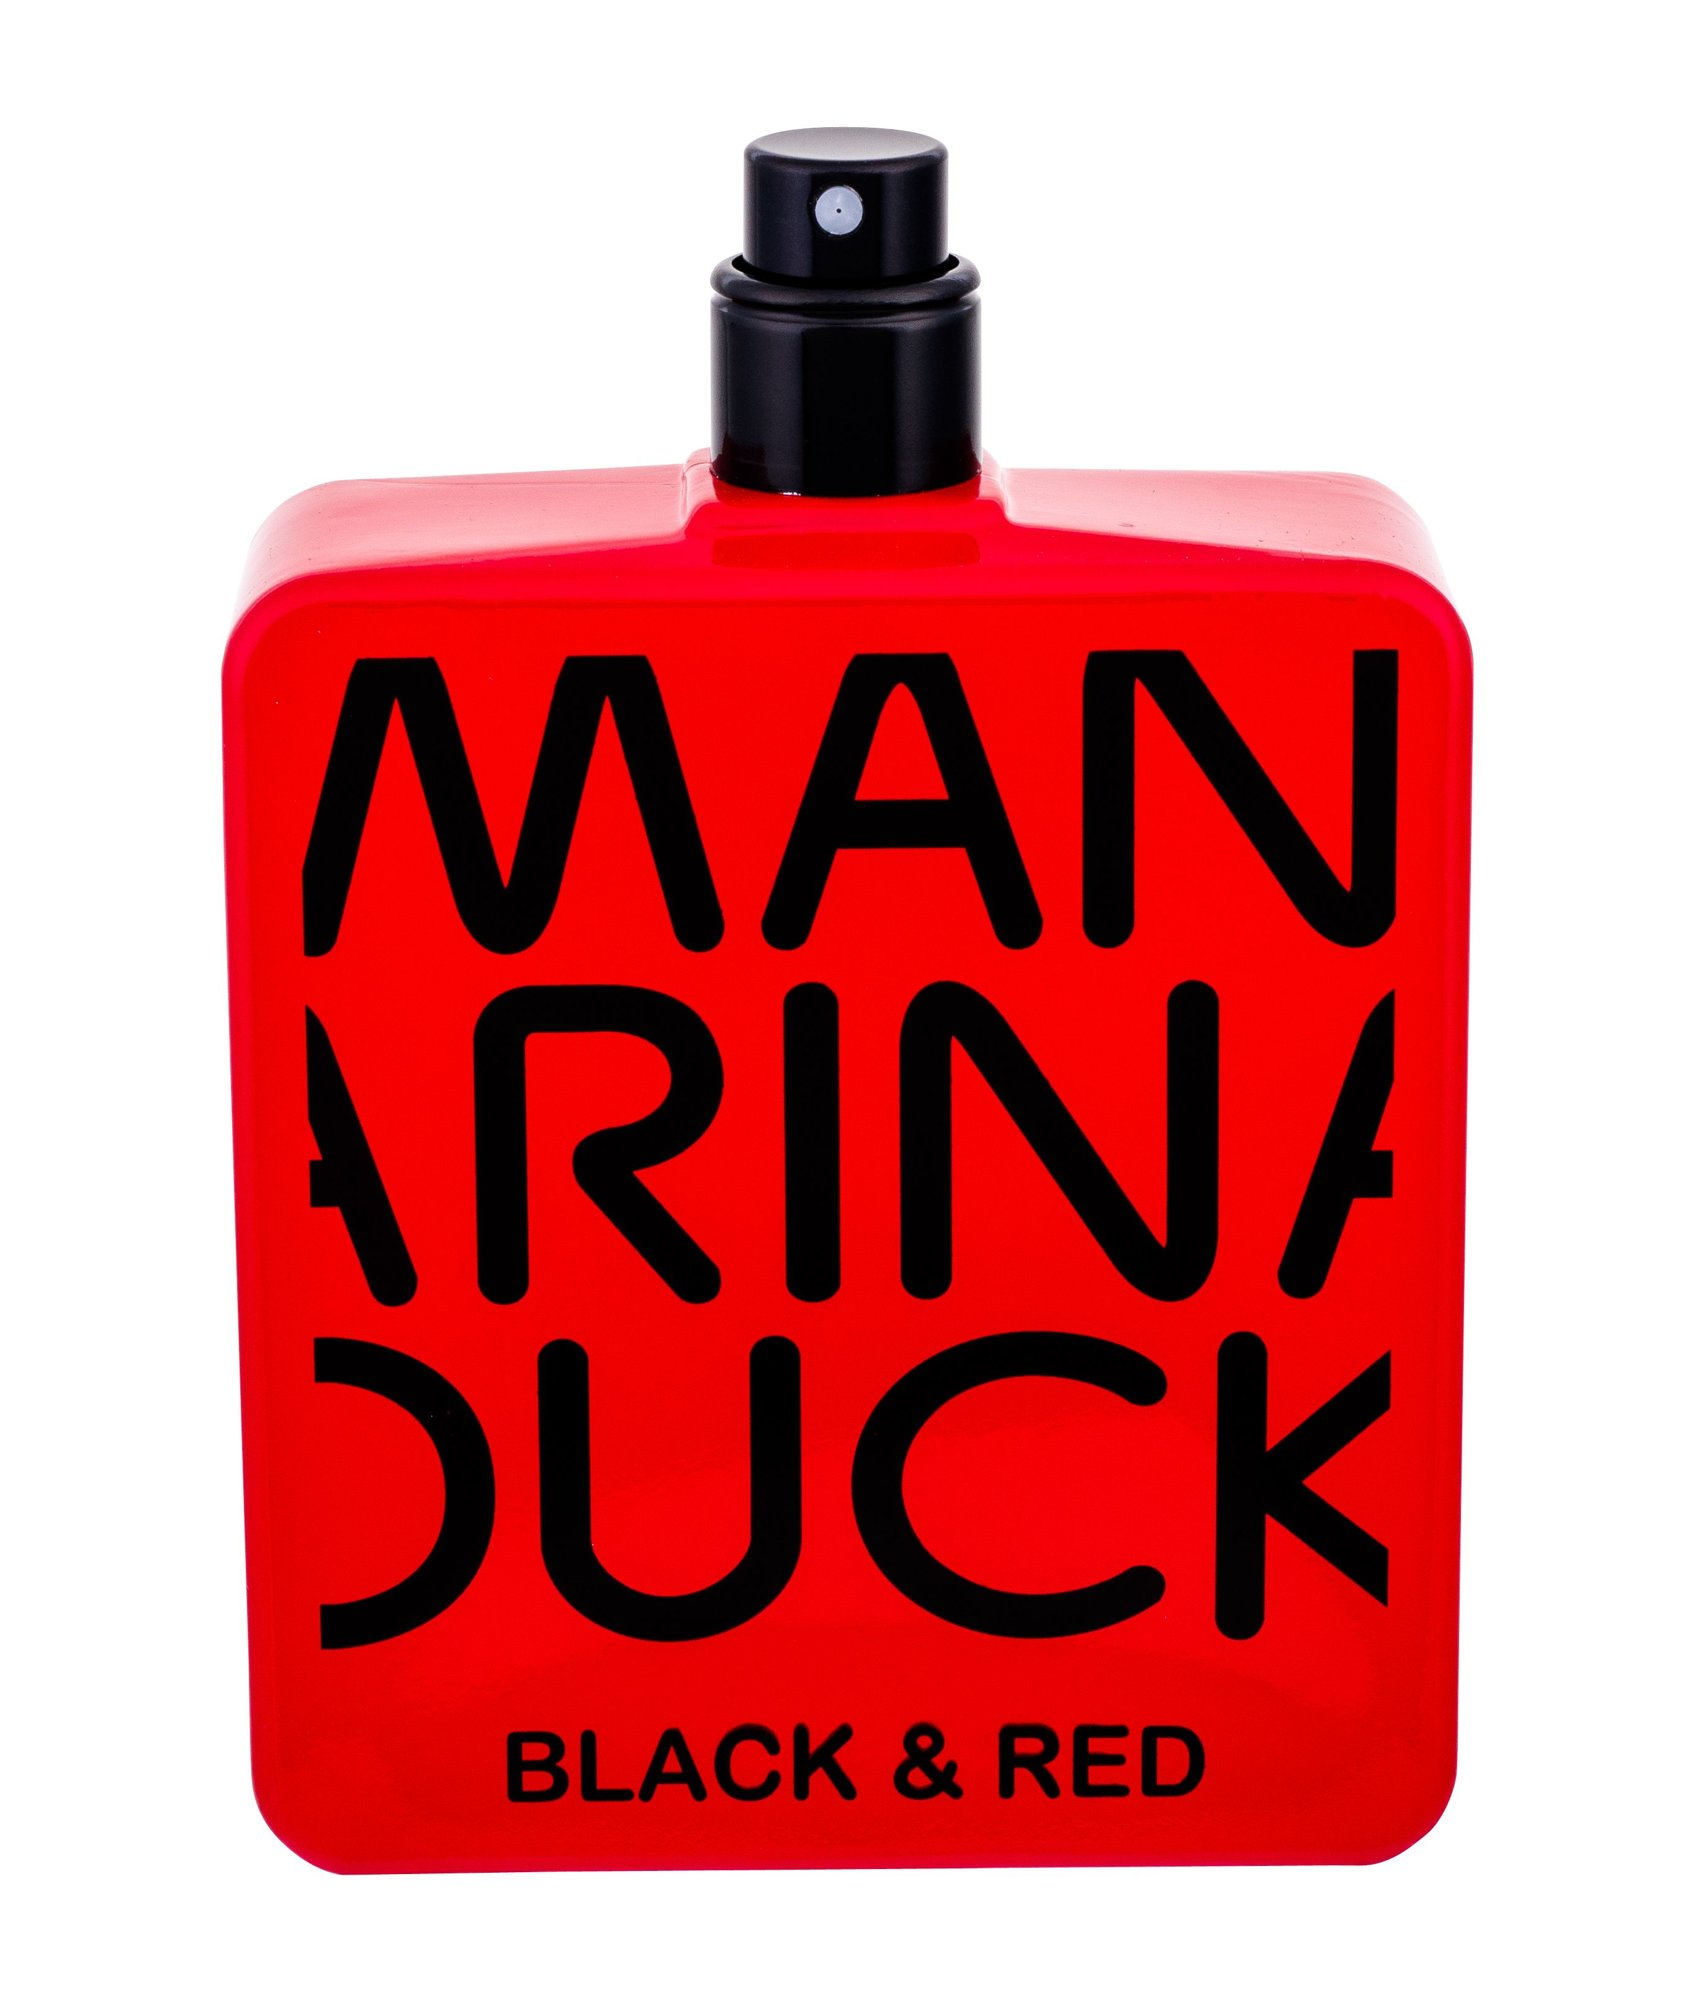 Mandarina Duck Black & Red EDT 100ml